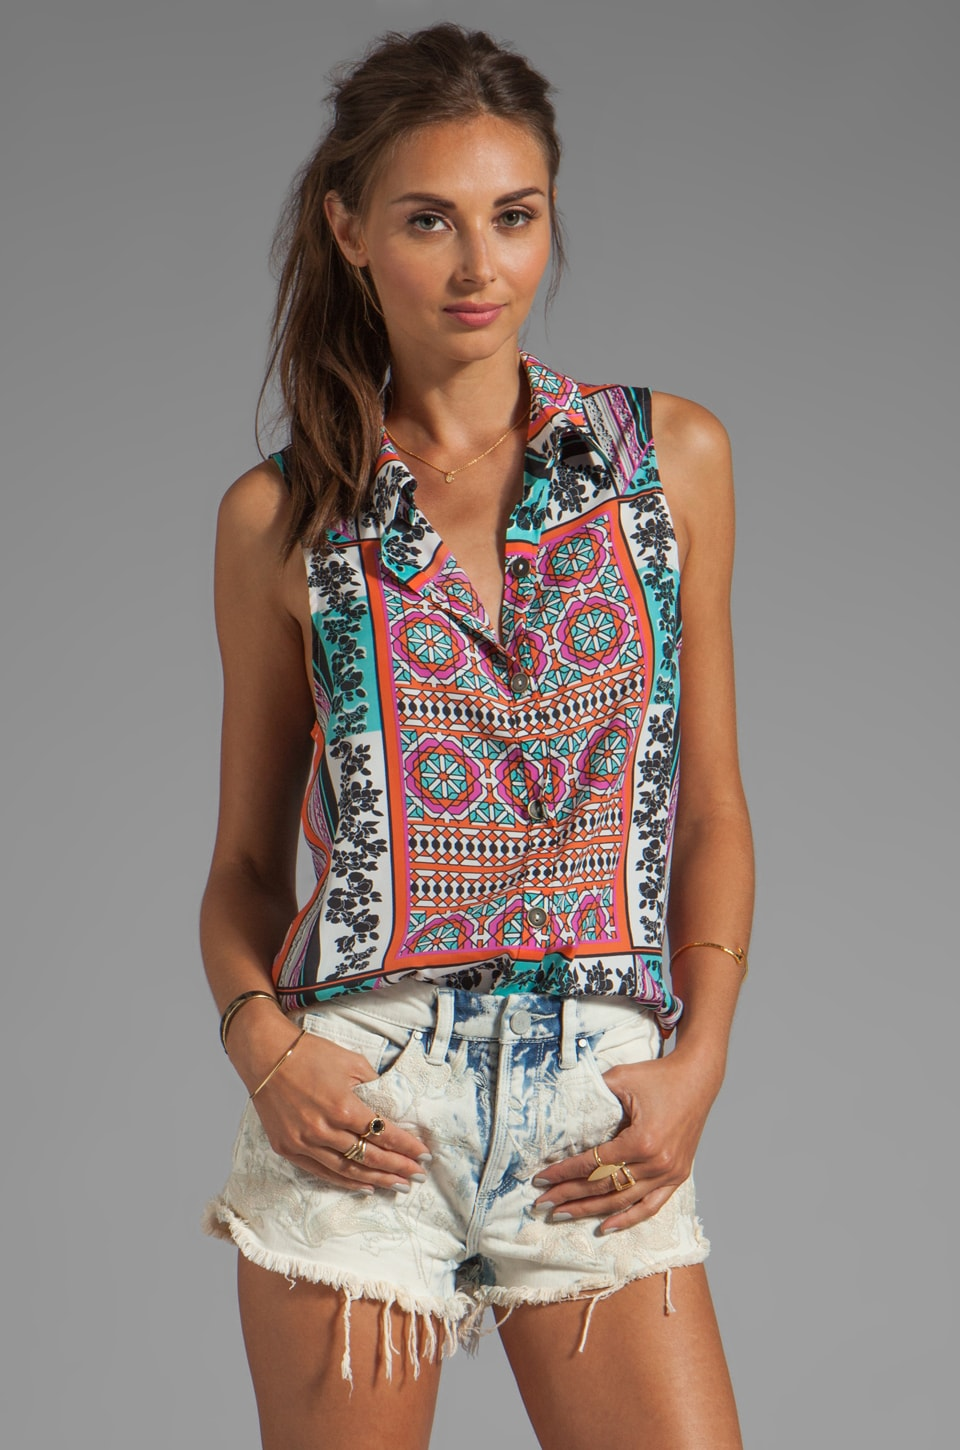 Ladakh Resort Scarf Print Top in Multi